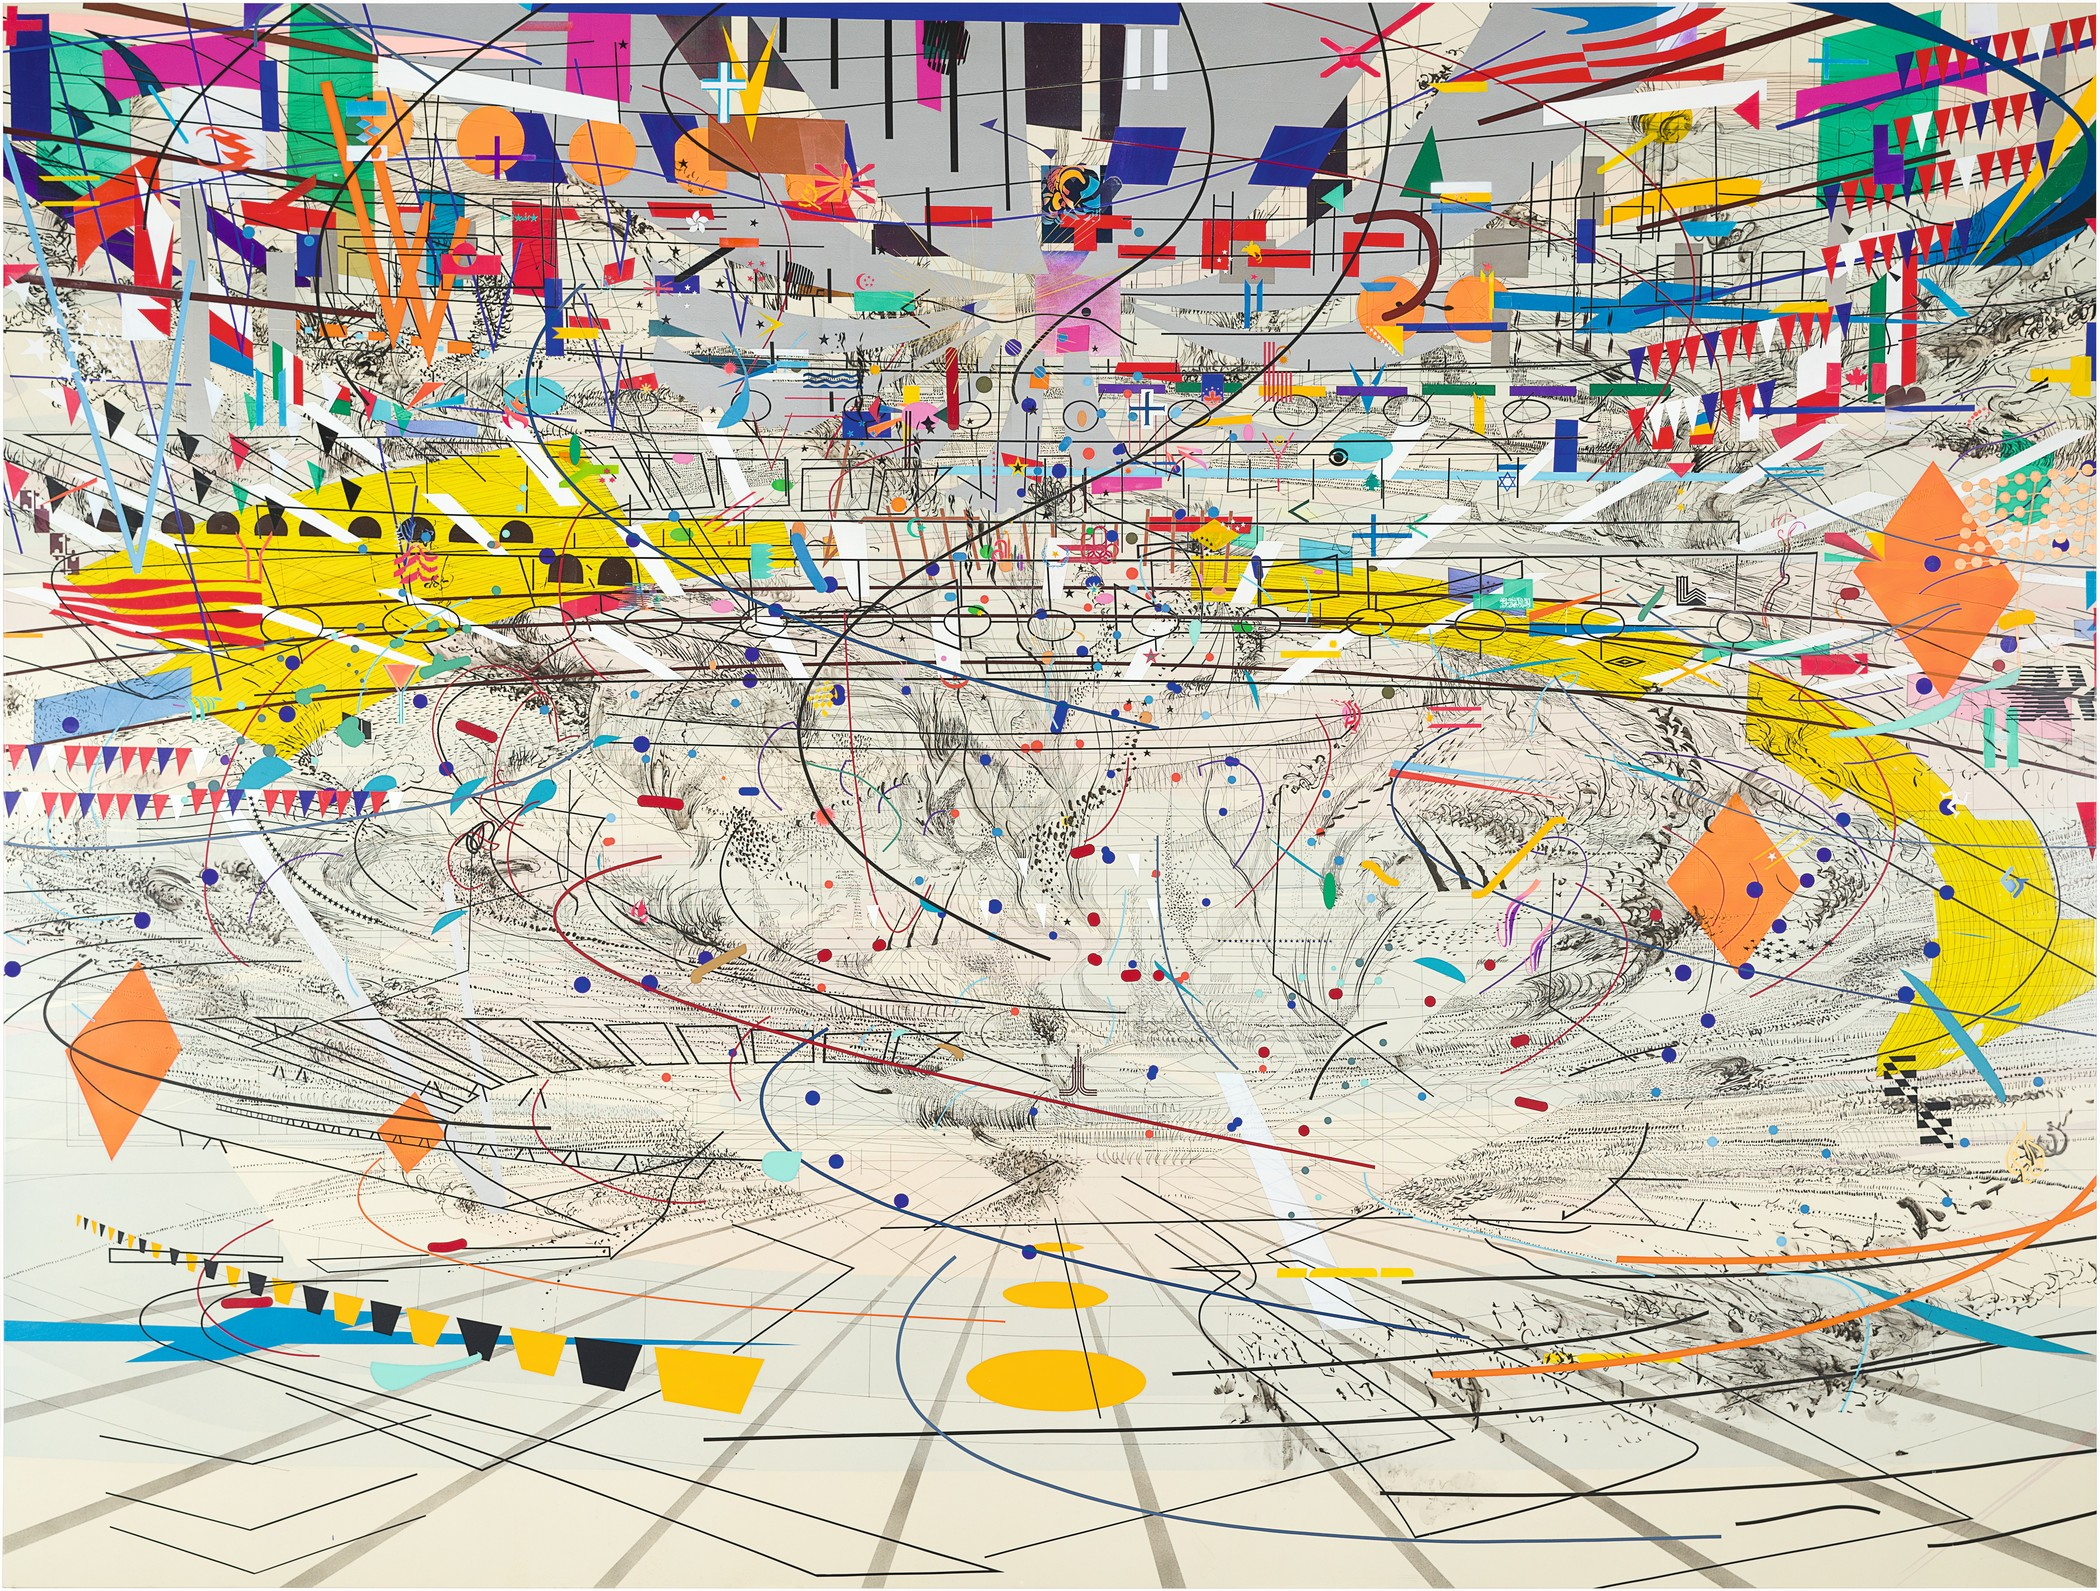 Julie Mehretu, Stadia II, 2004, Carnegie Museum of Art, Pittsburgh, gift of Jeanne Greenberg Rohatyn and Nicolas Rohatyn and A. W. Mellon Acquisition Endowment Fund 2004.50, © Julie Mehretu, photograph courtesy of the Carnegie Museum of Art